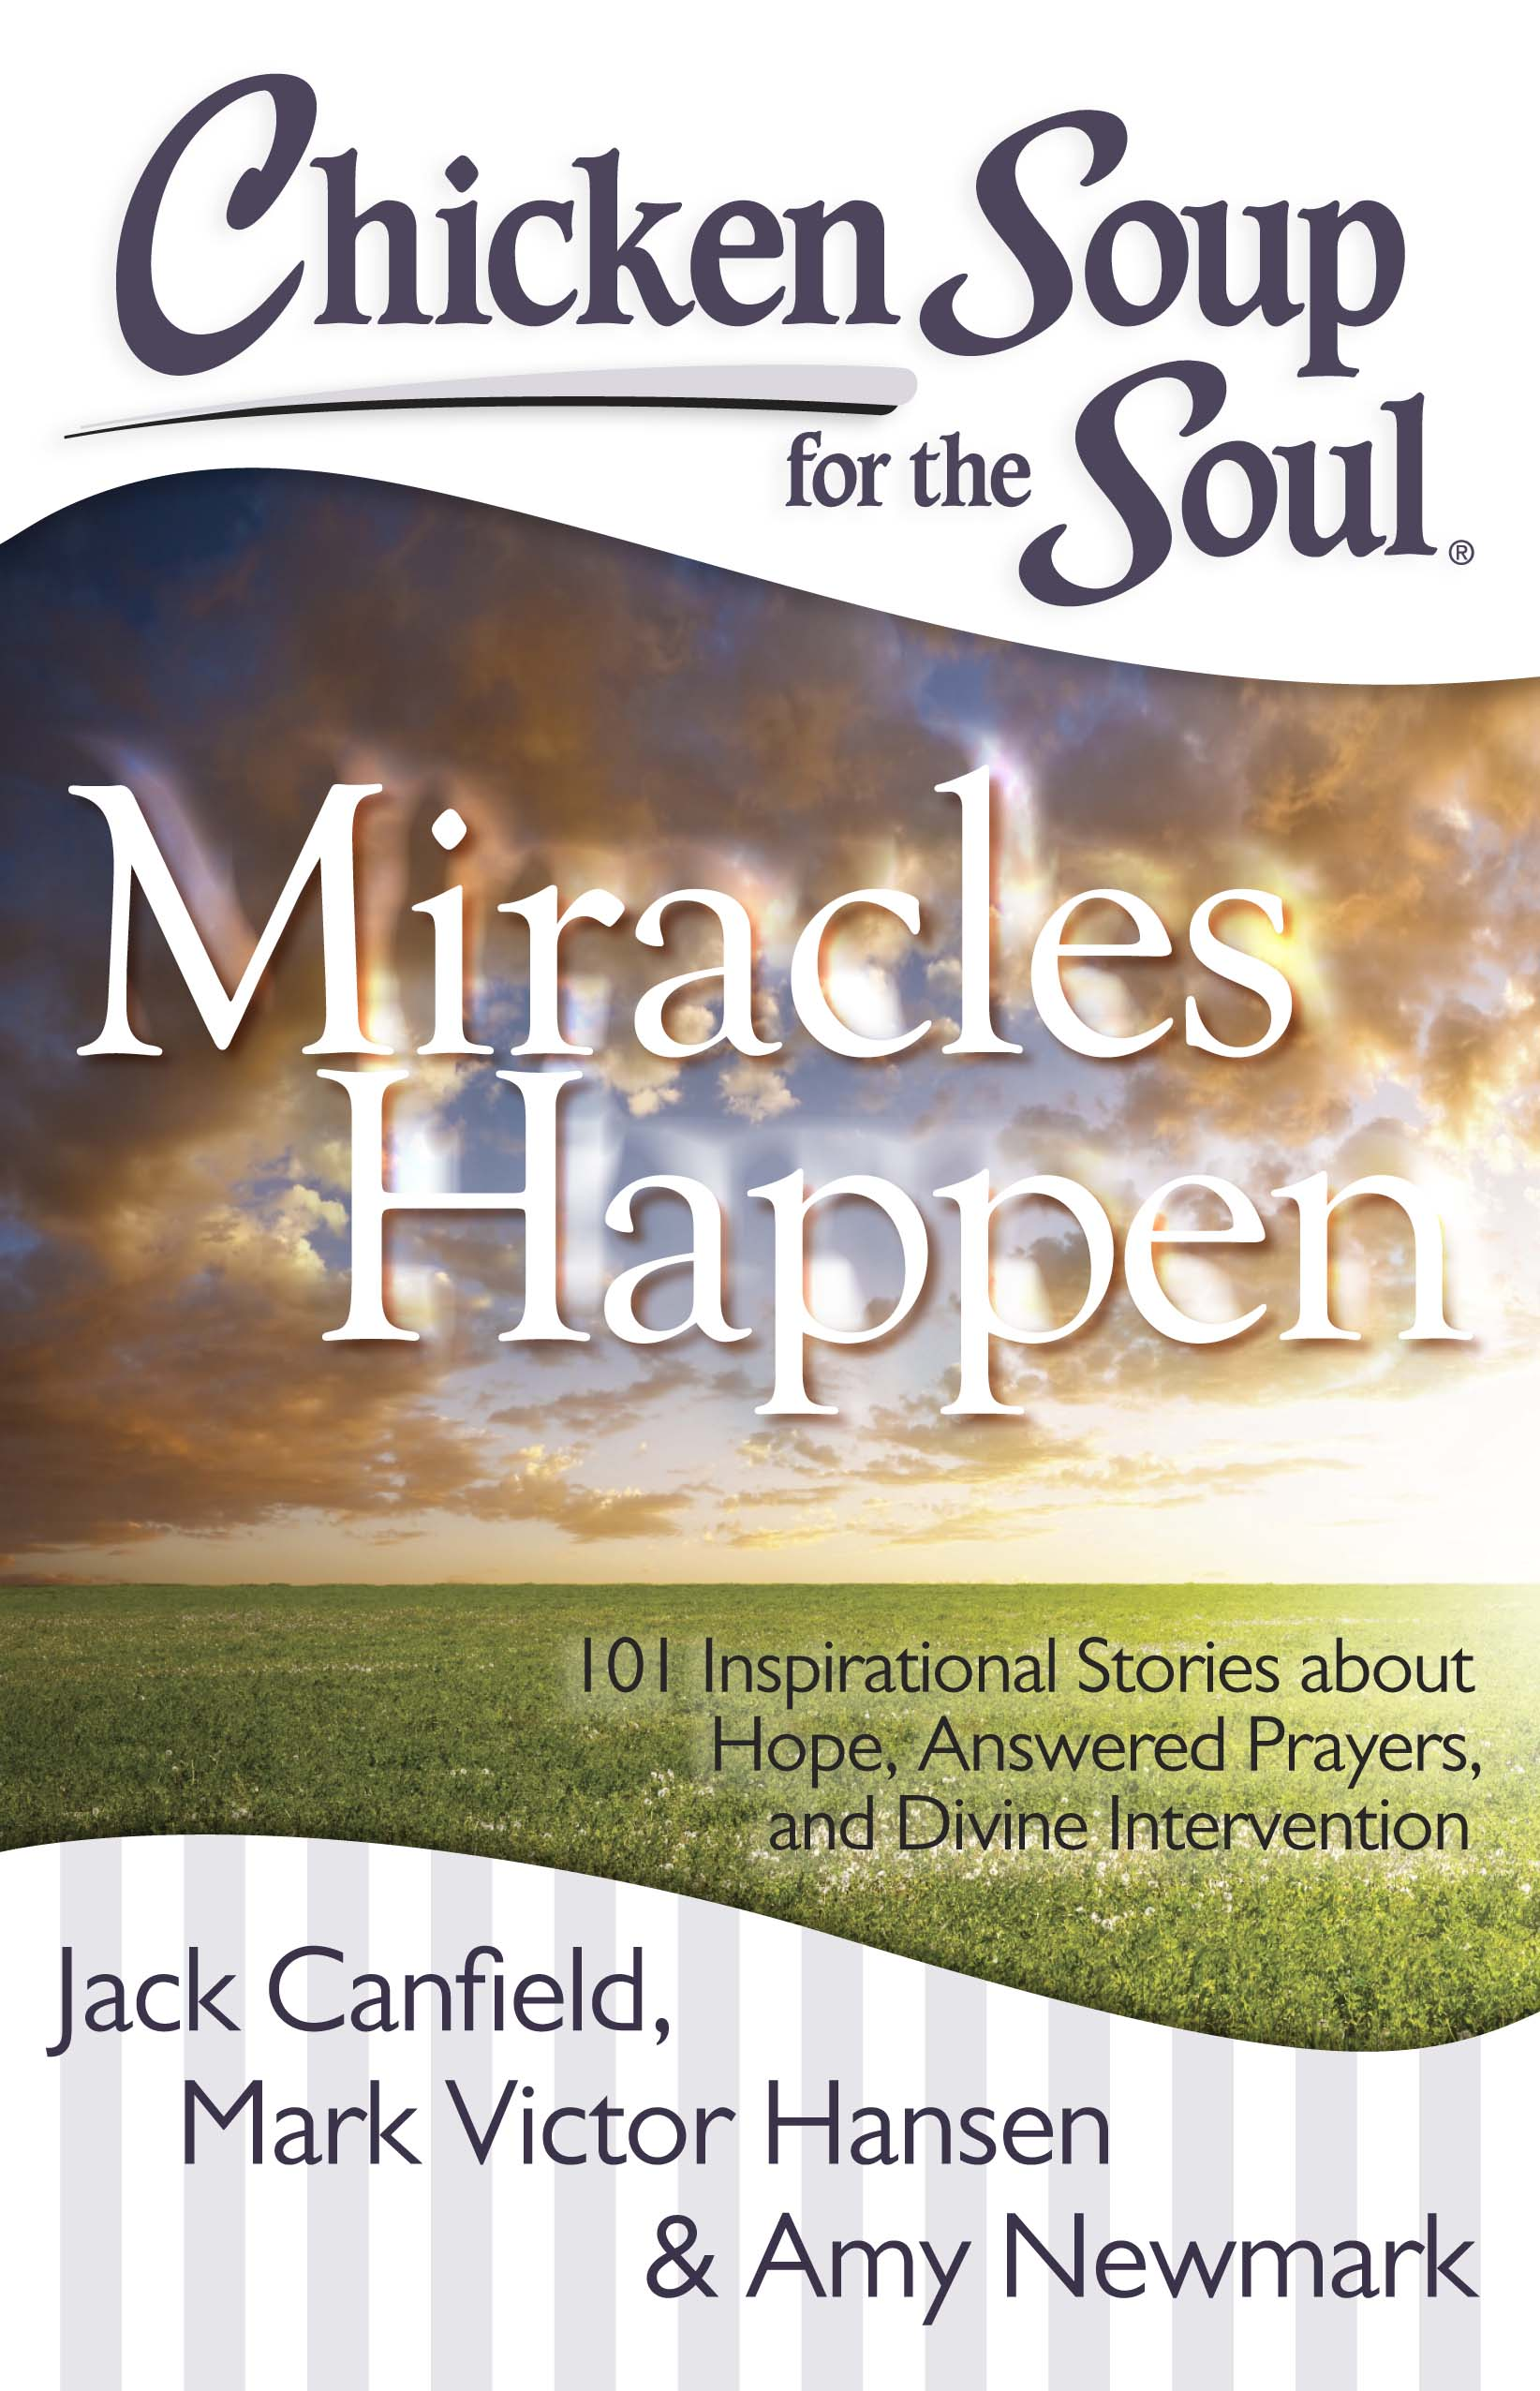 Chicken soup for the soul miracles happen 9781611592337 hr